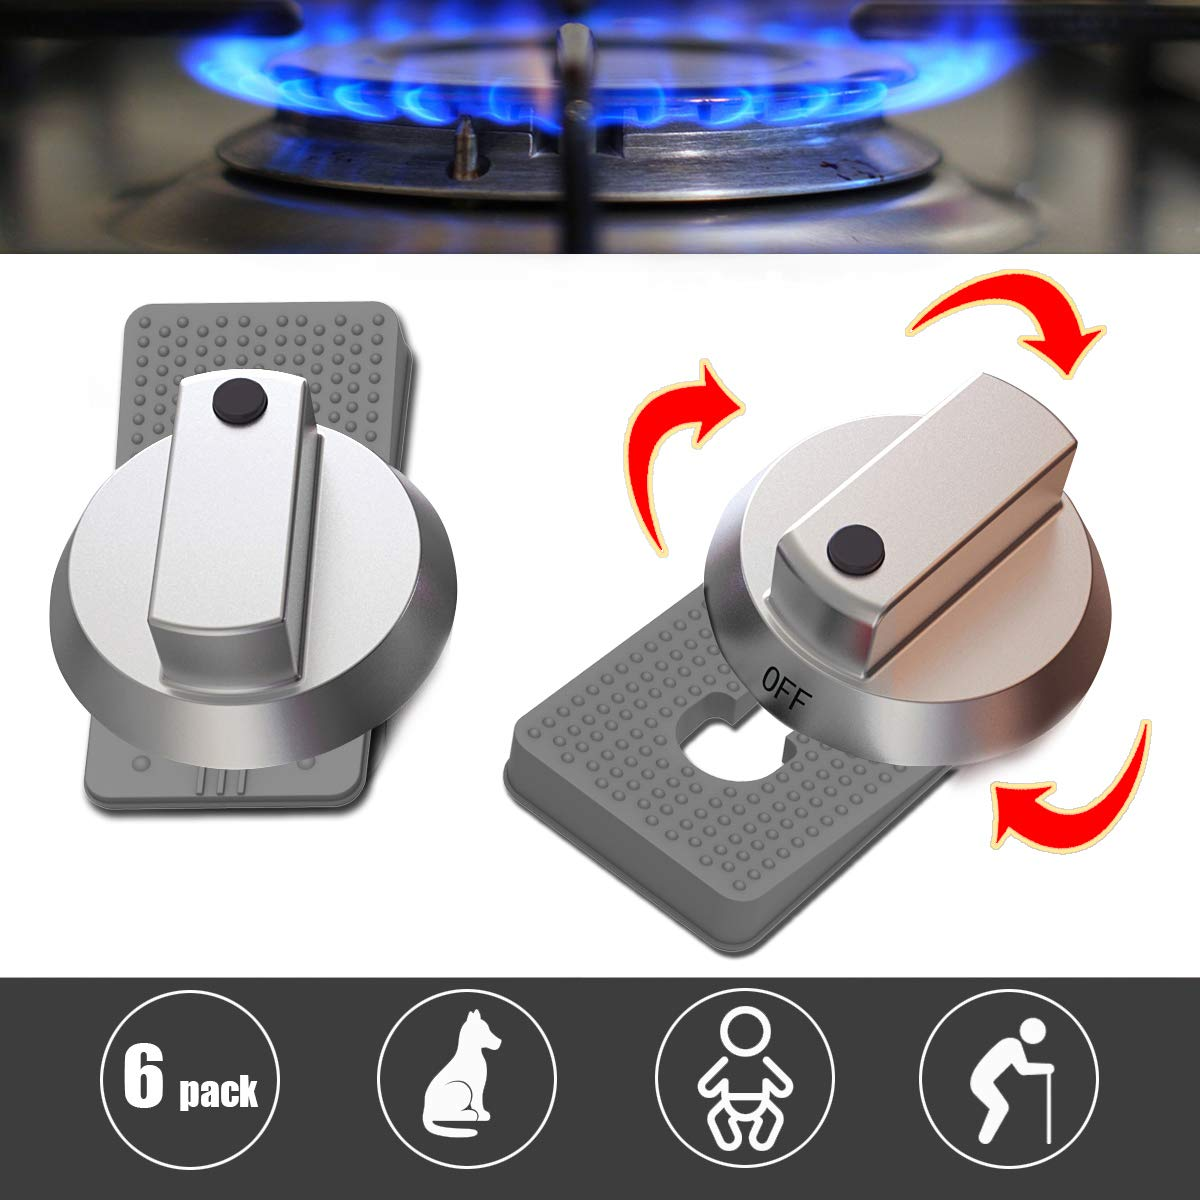 Red Kids Safety Oven Knob Lock Heat Resistant Silicone Gas Knobs Locks 6 Pack Oven Rotary Switch Cooking Surface Control Locks for Baby Child Toddler Pets Safety Kitchen Stove Knob Locks